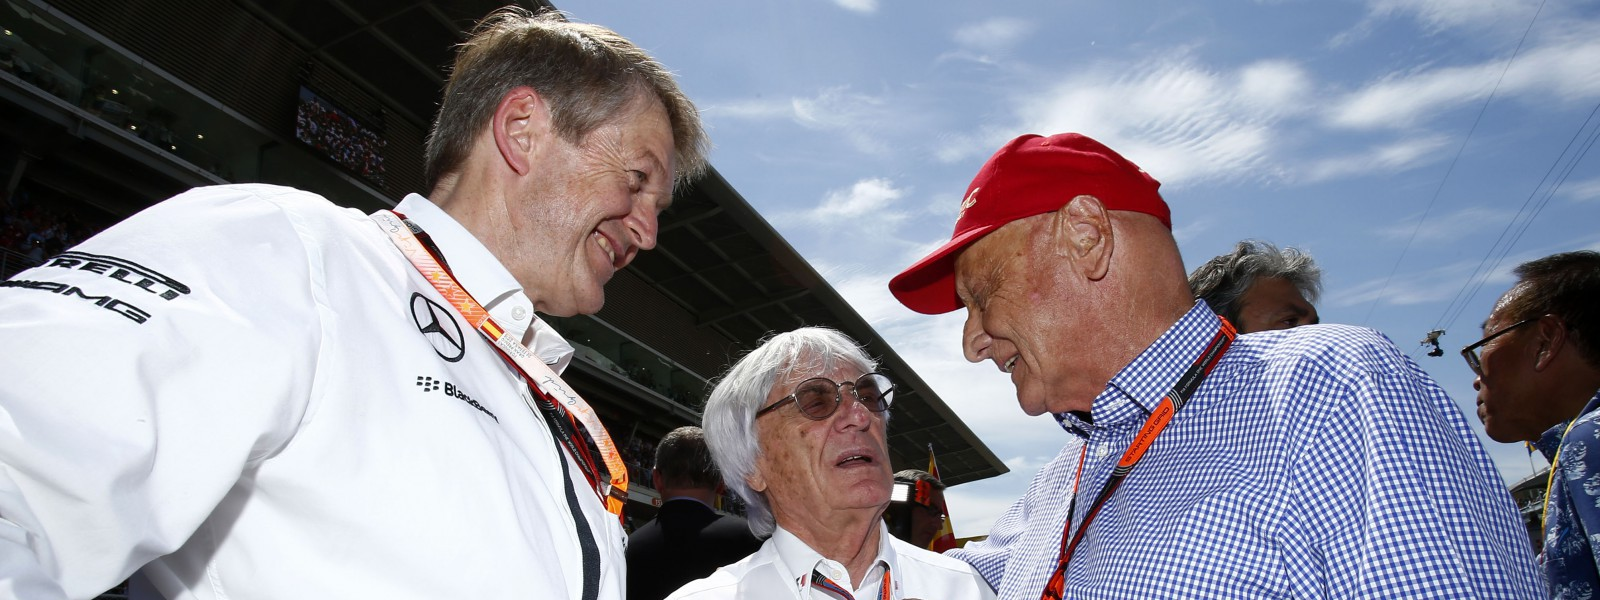 Motorsports: FIA Formula One World Championship 2015, Grand Prix of Spain,  Prof. Dr. Thomas Weber (Member of the Board of Management of Daimler AG), Bernie Ecclestone (GBR, President and CEO of Formula One Management and Formula One Administration), Niki Lauda (AUT, Mercedes AMG Petronas F1 Team),  *** Local Caption *** +++ www.hoch-zwei.net +++ copyright: HOCH ZWEI +++